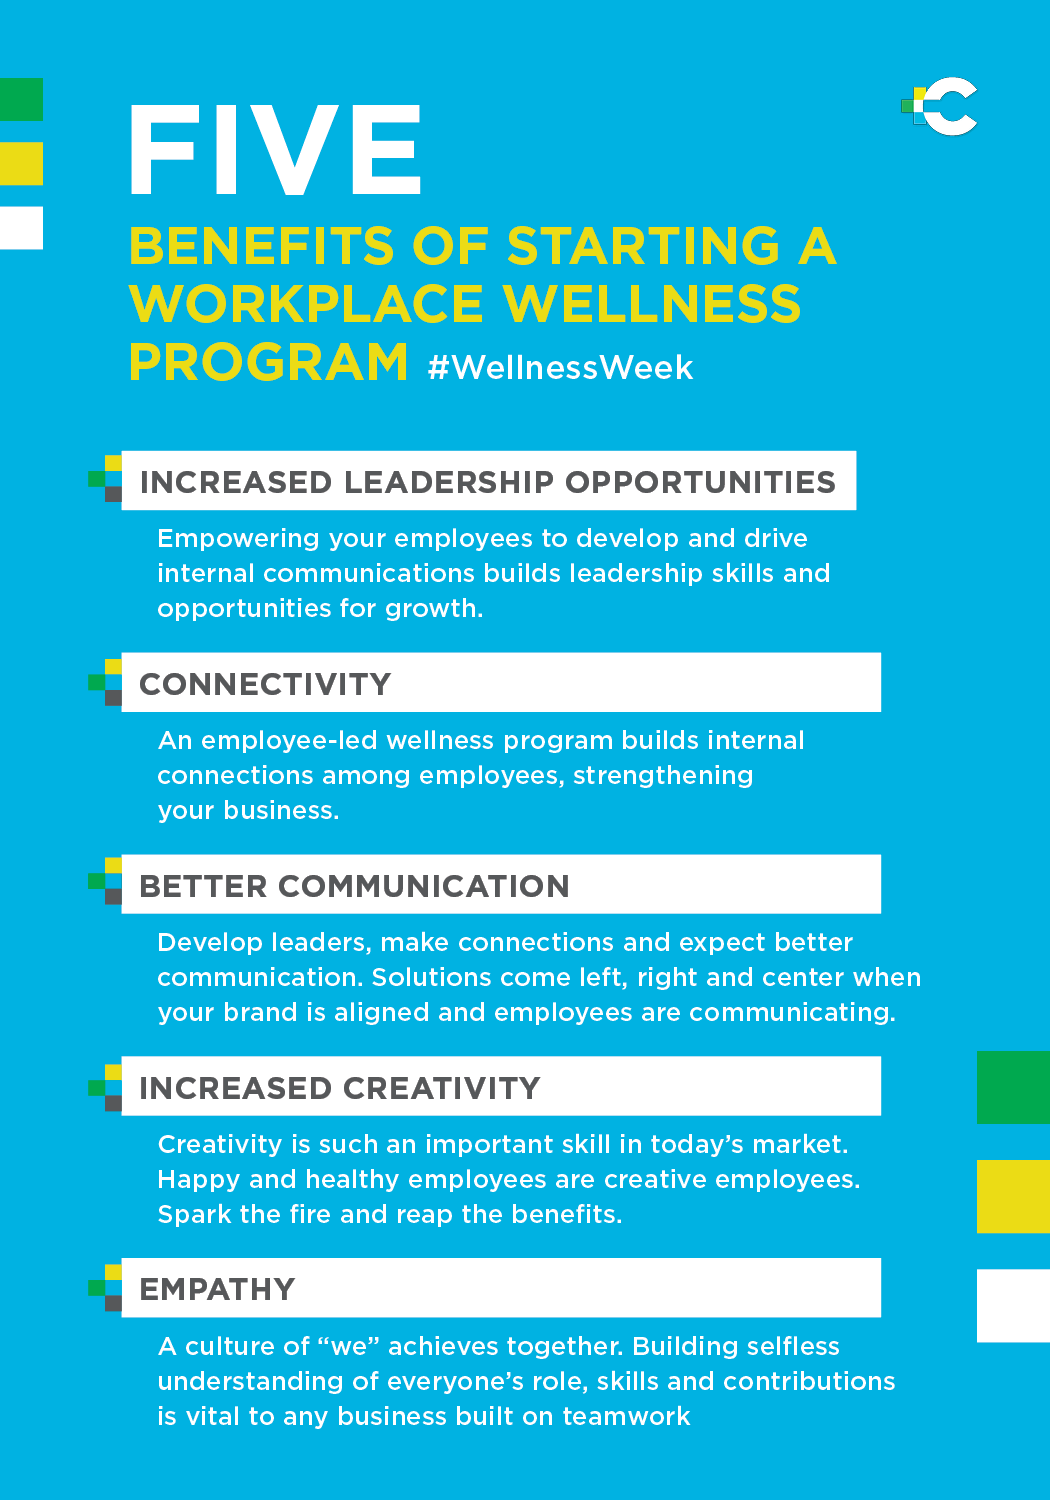 Five Benefits Of Starting A Workplace Wellness Program